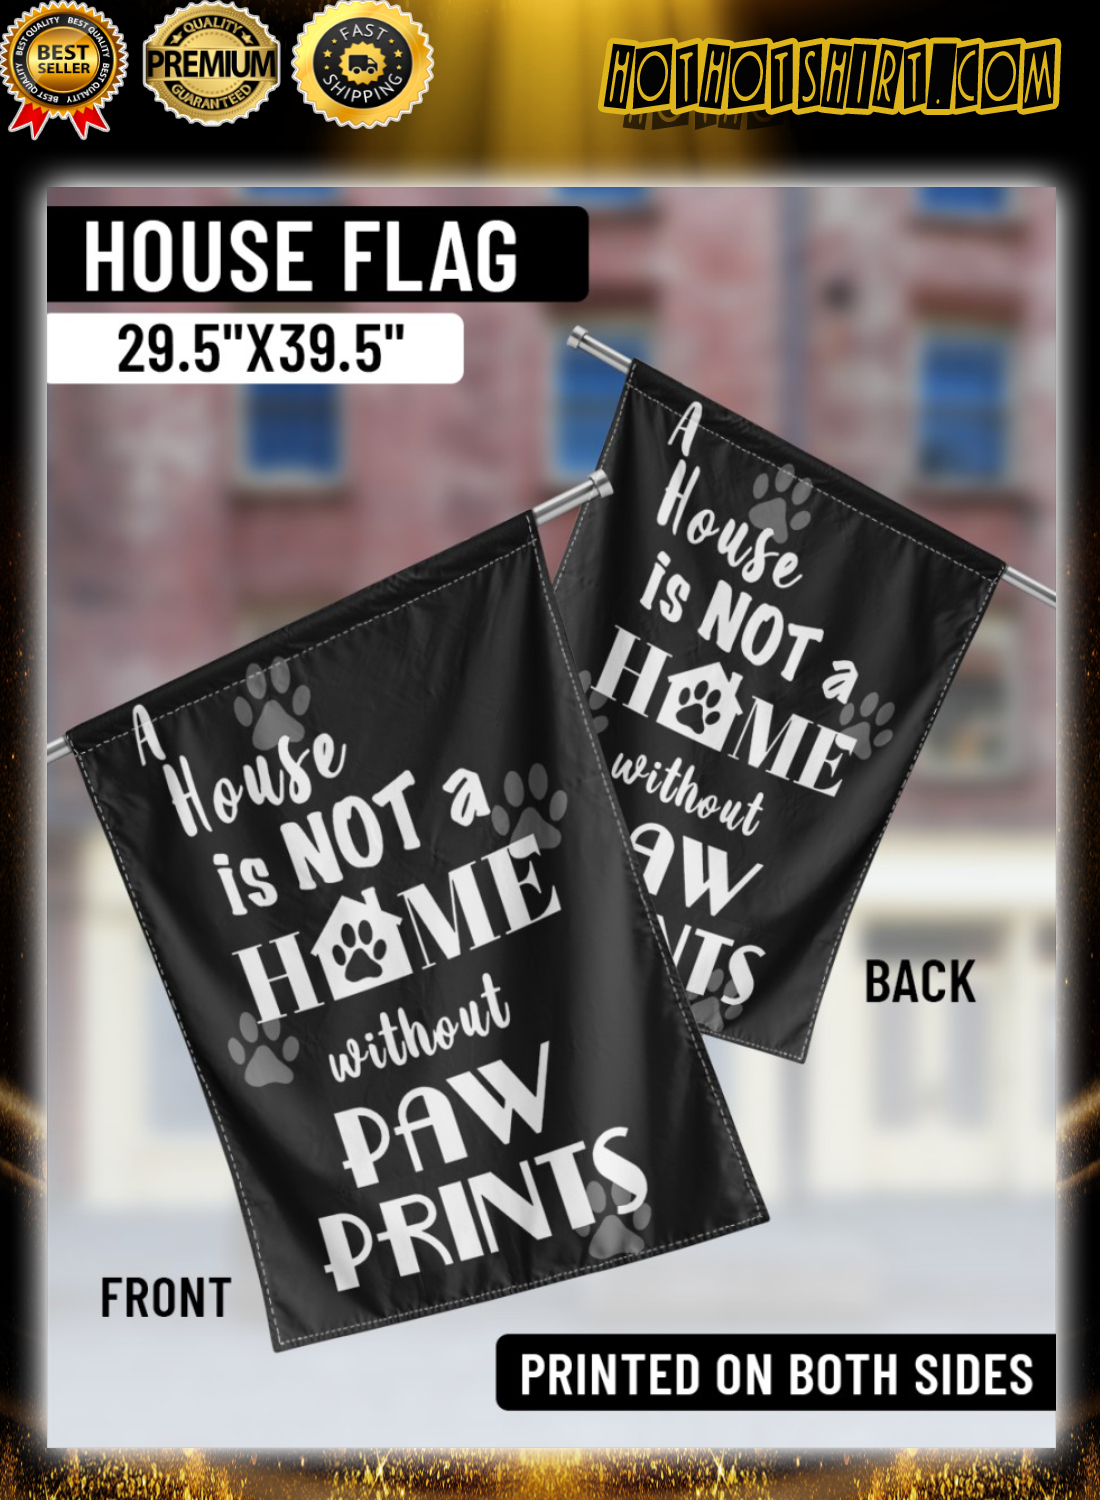 A house is not a home without paw prints flag 1